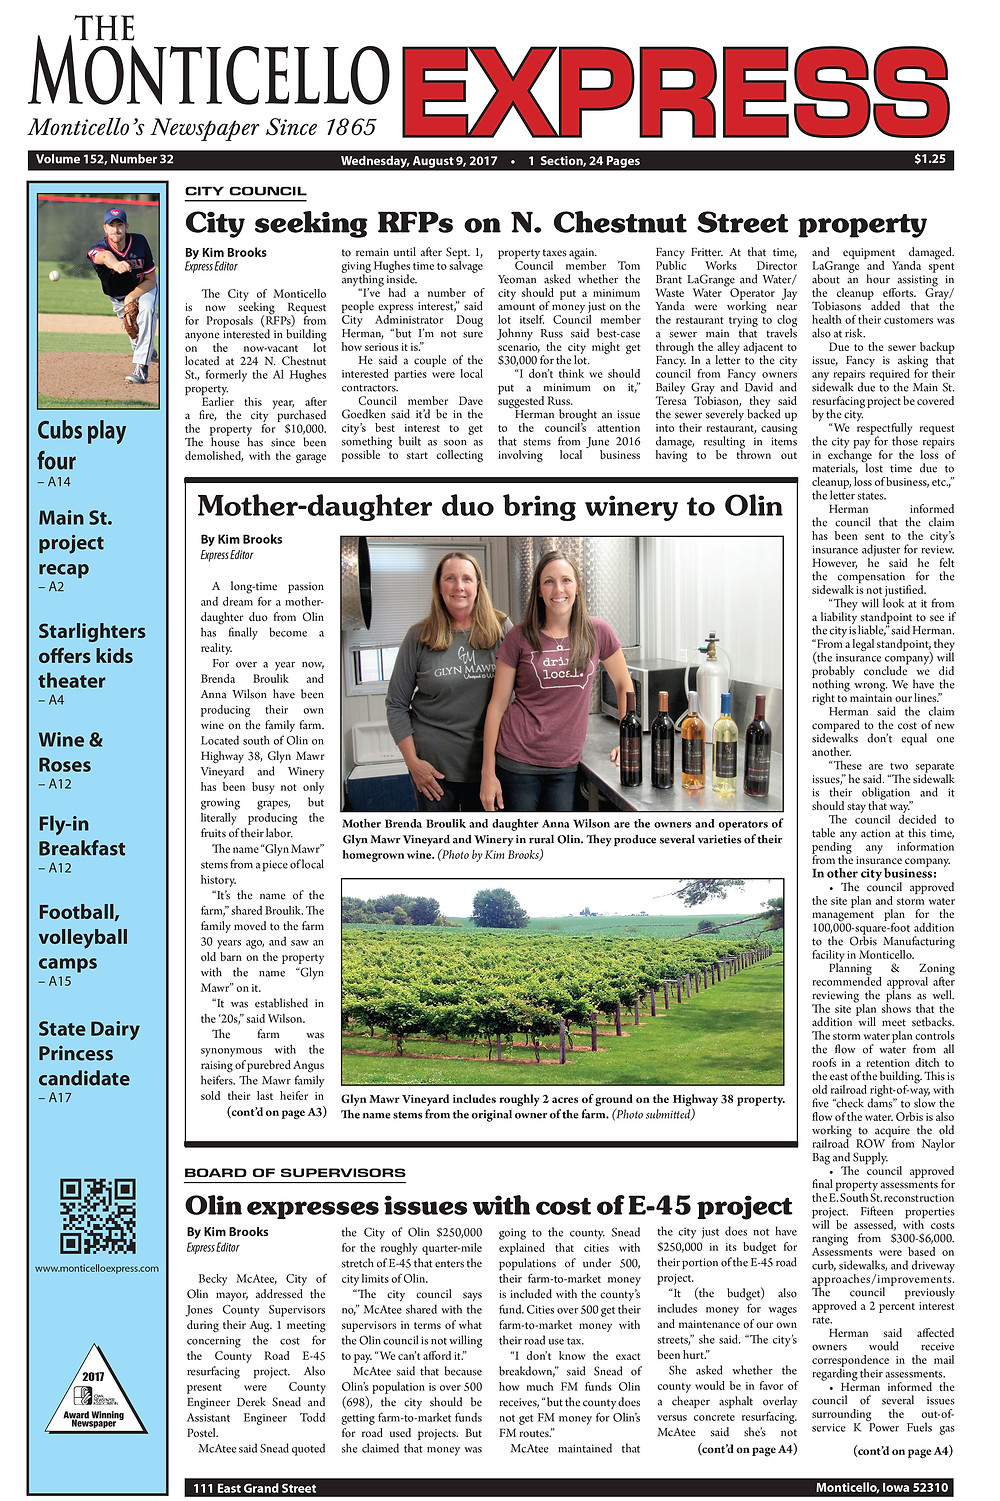 Monticello Express article page 1 jpg